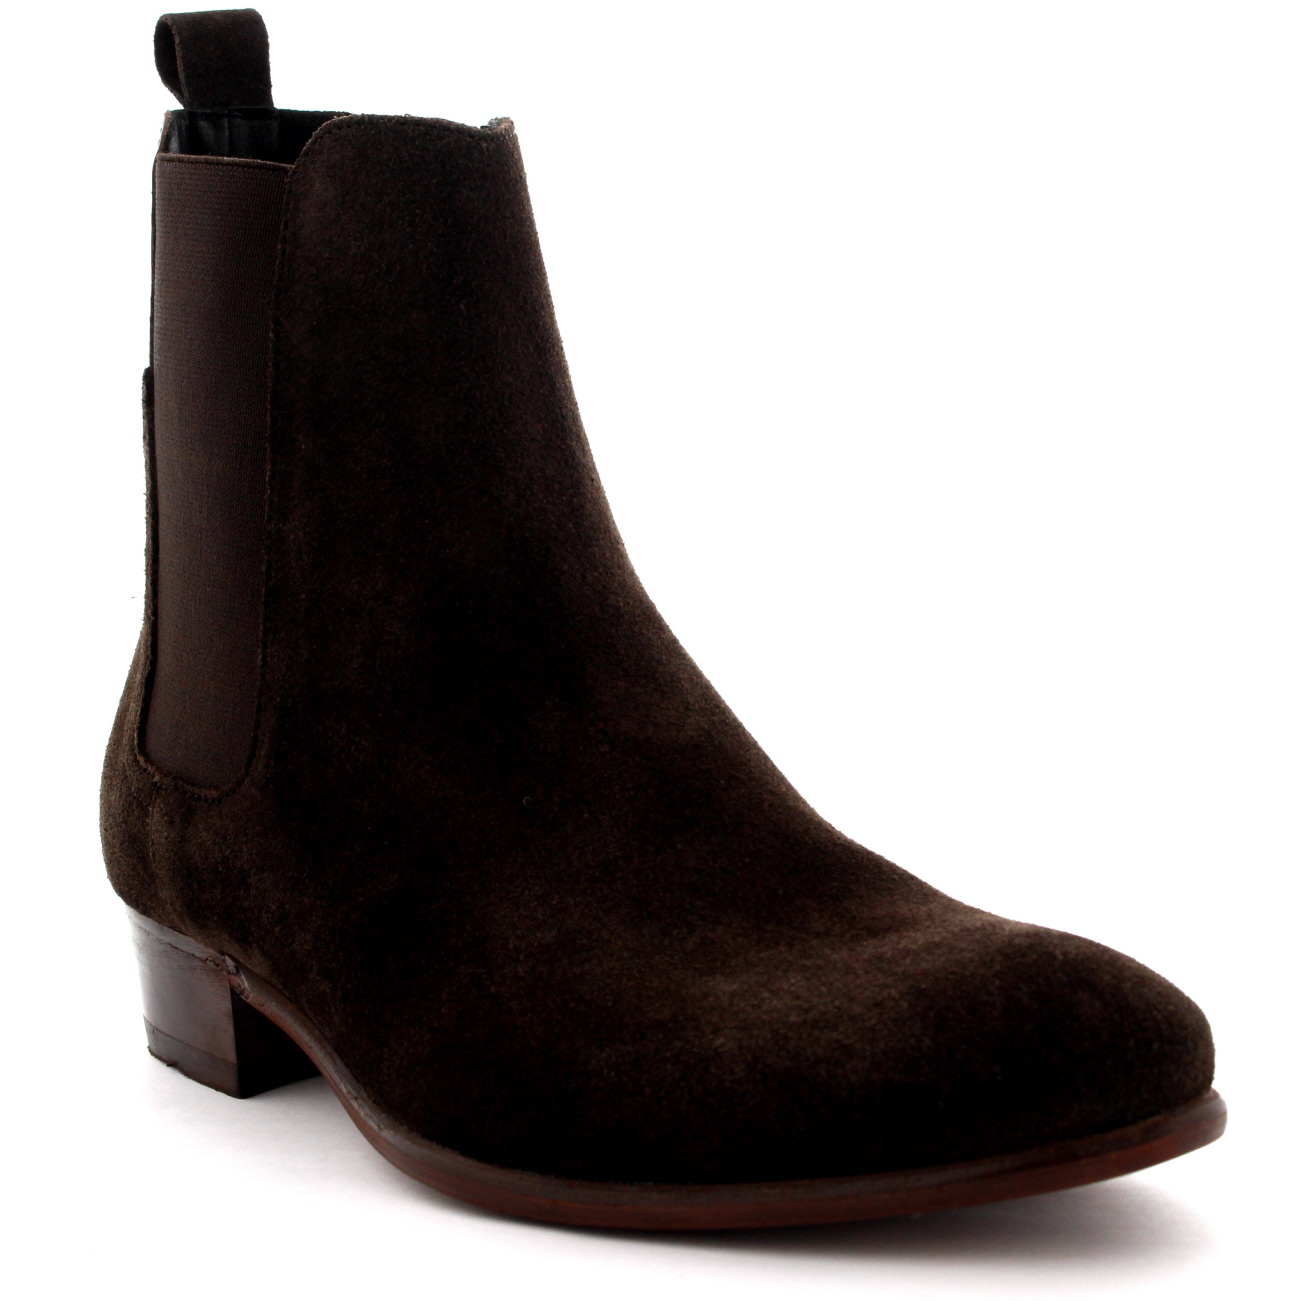 3dfaec6c0 Details about Mens H By Hudson Watts Suede Black Pull On Casual Ankle  Chelsea Boots UK 6-12